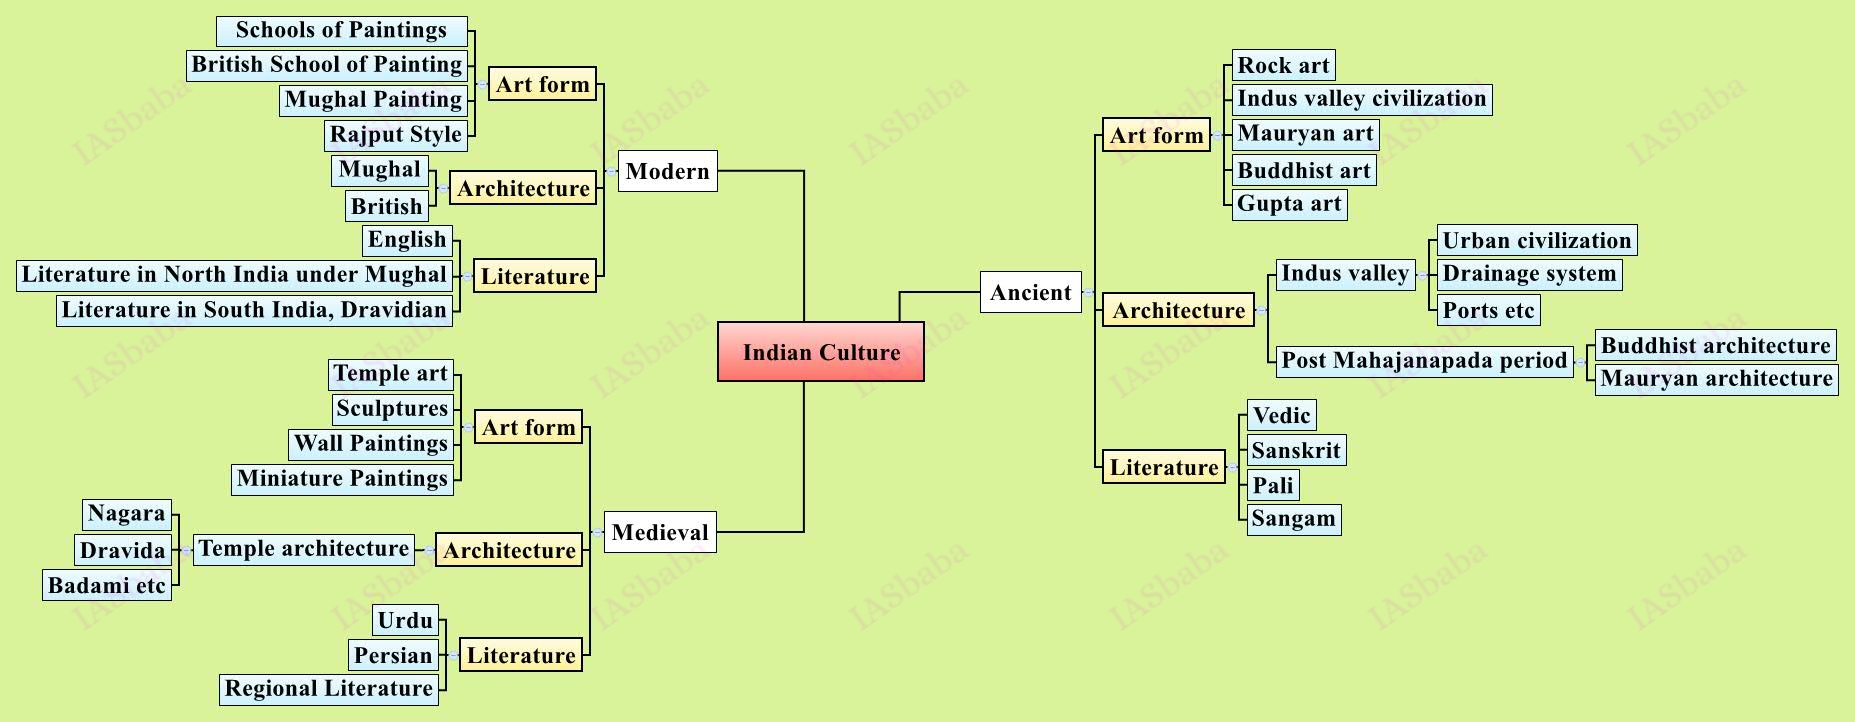 mind map archive iasbaba